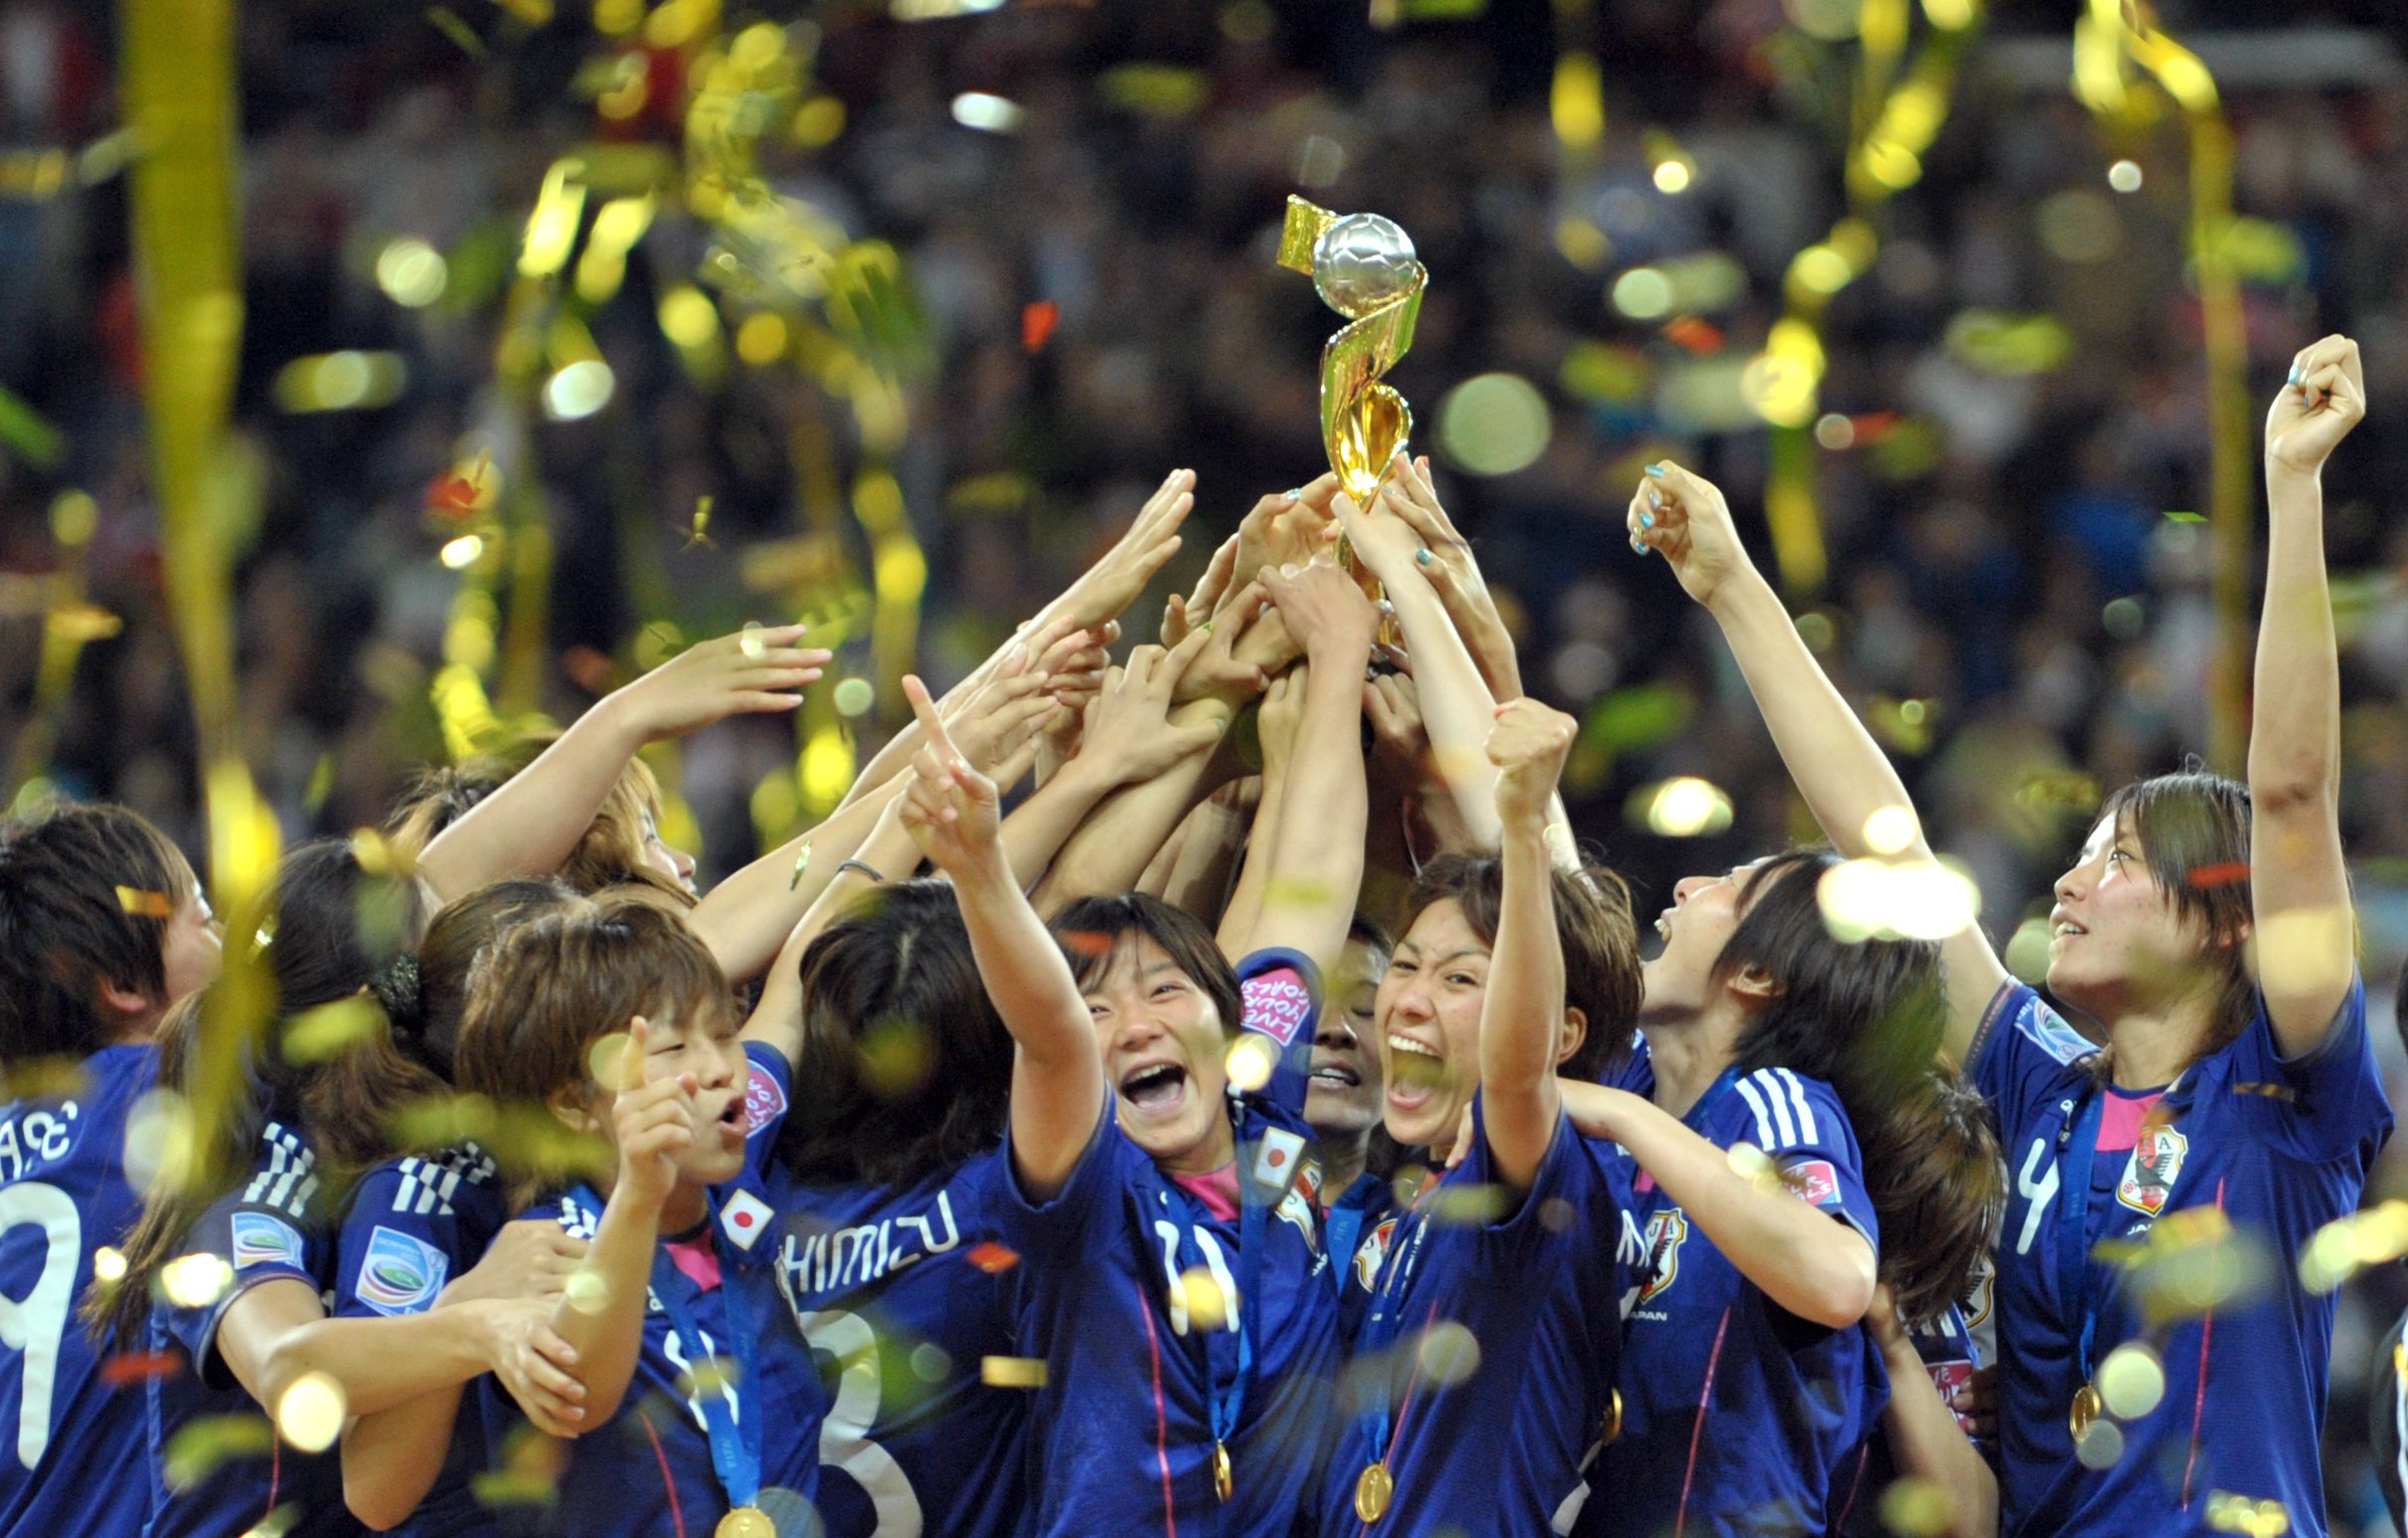 Japan submits bid to host the 2023 FIFA Women's World Cup